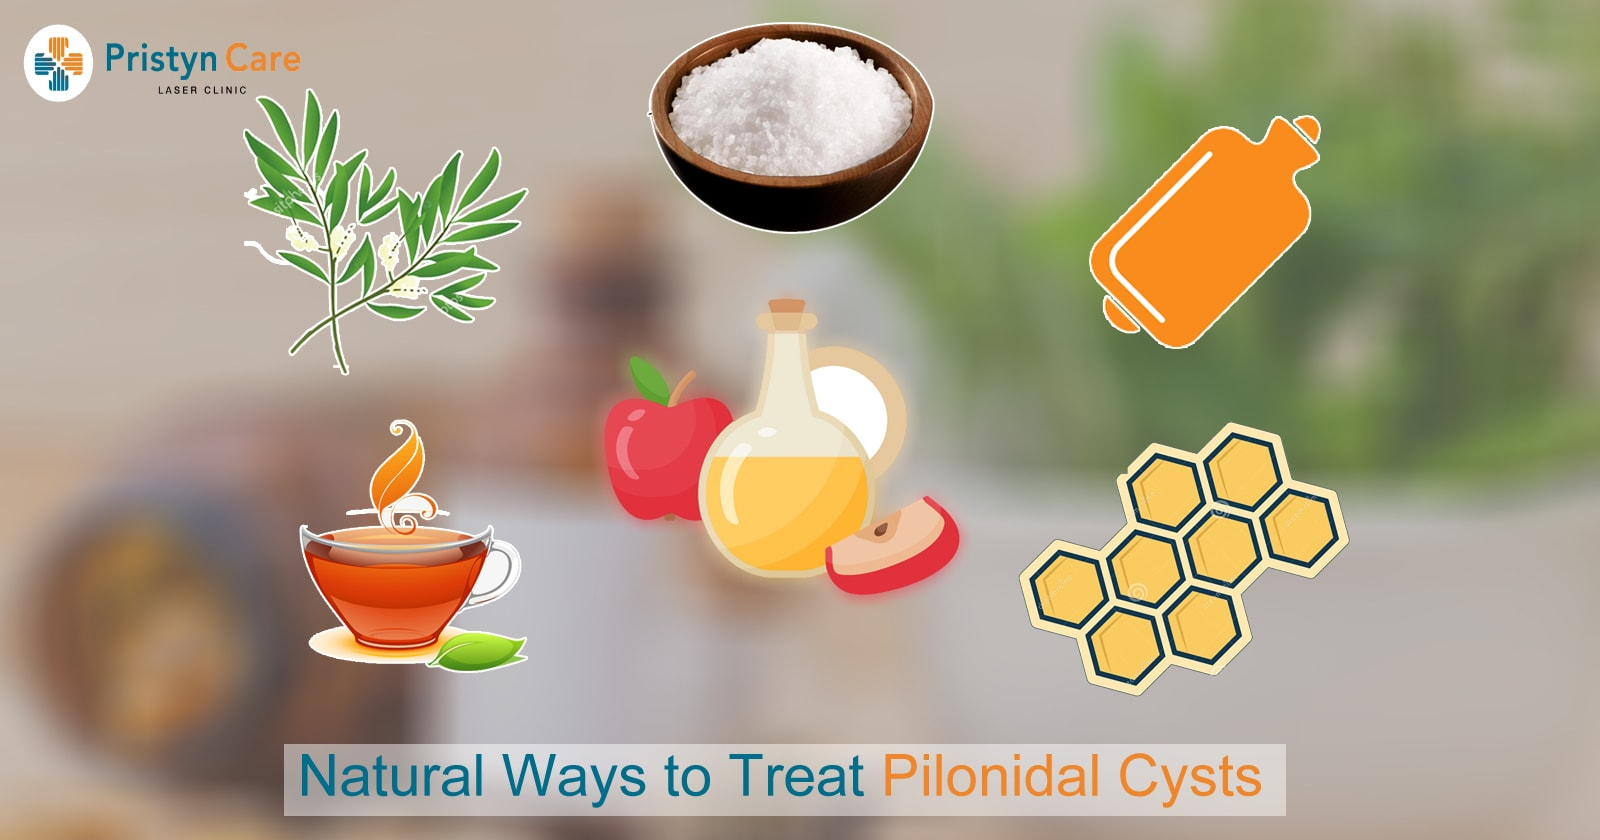 Natural Ways to Treat Pilonidal Cysts